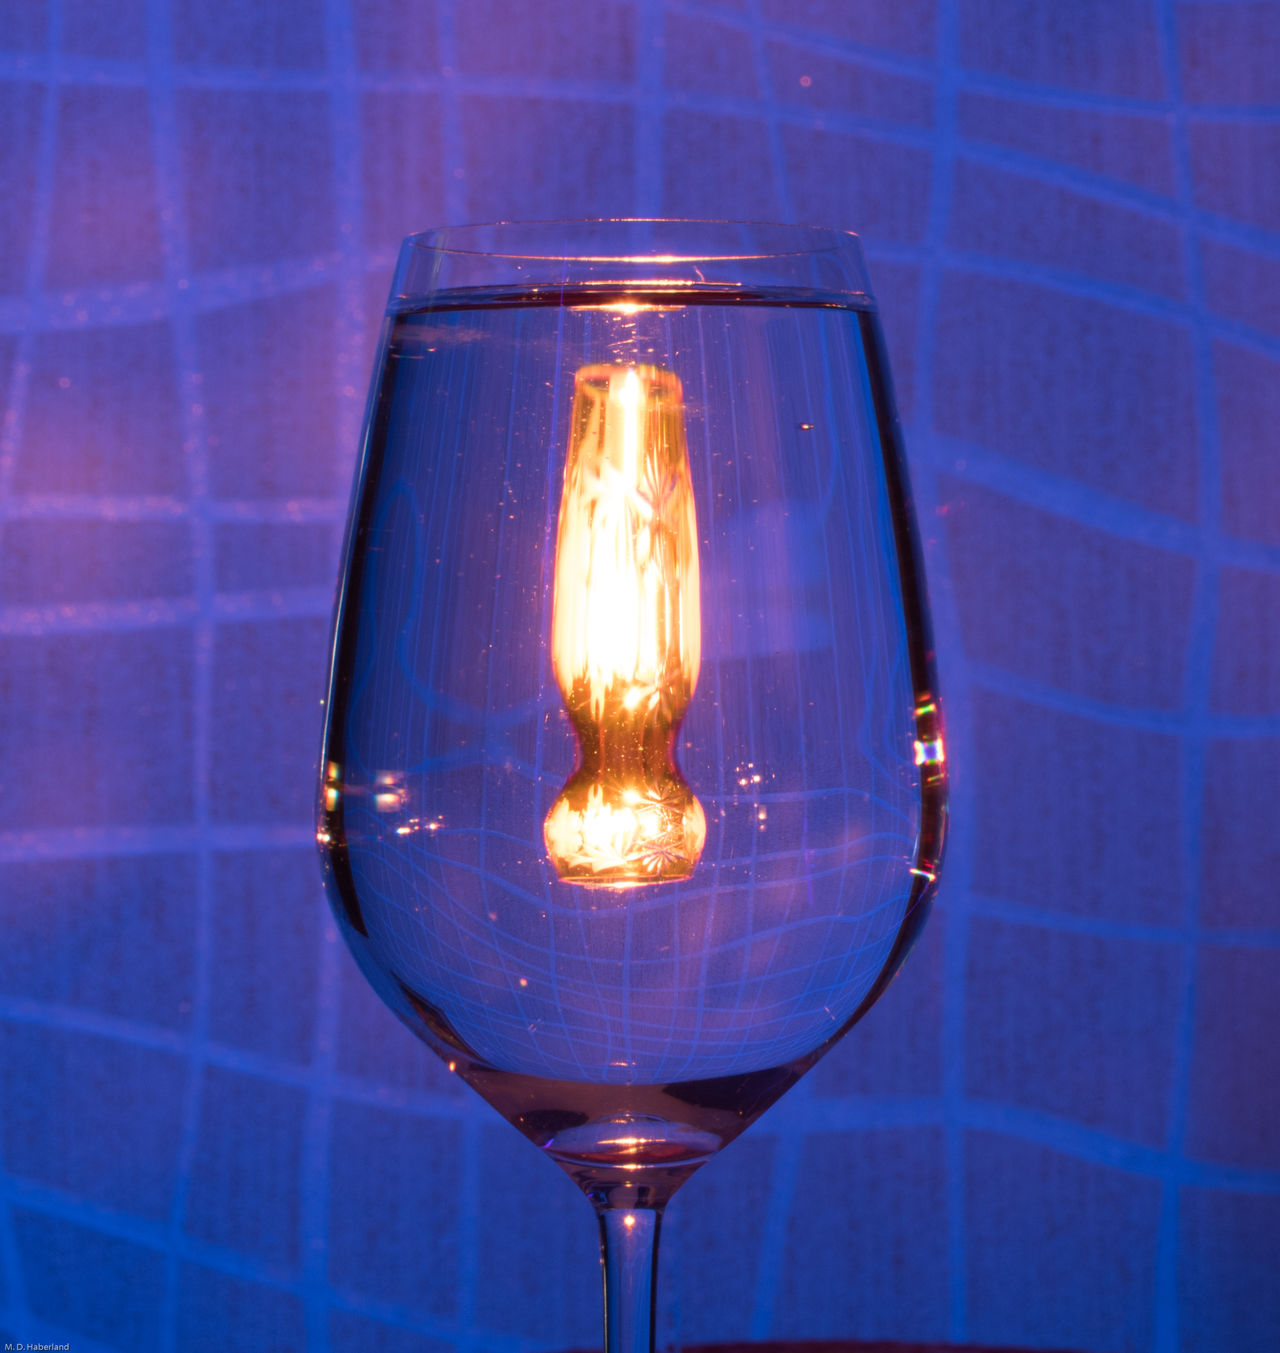 Magic Glass EyeEmNewHere Candle Light Blacklight Mirrored Waterglass Indoors  No People Illuminated